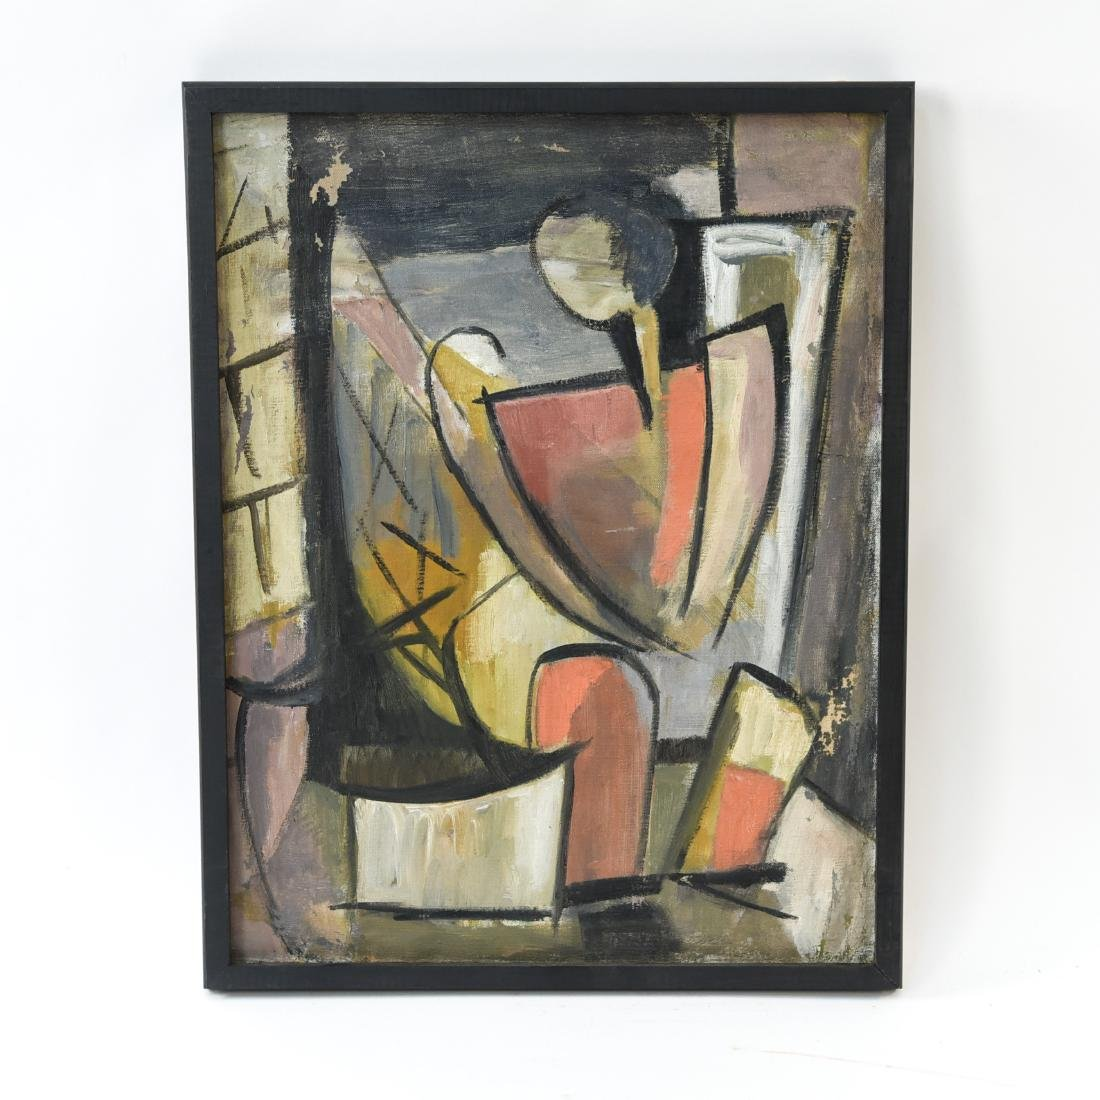 MID-CENTURY CUBIST FIGURE 1950S OIL ON CANVAS